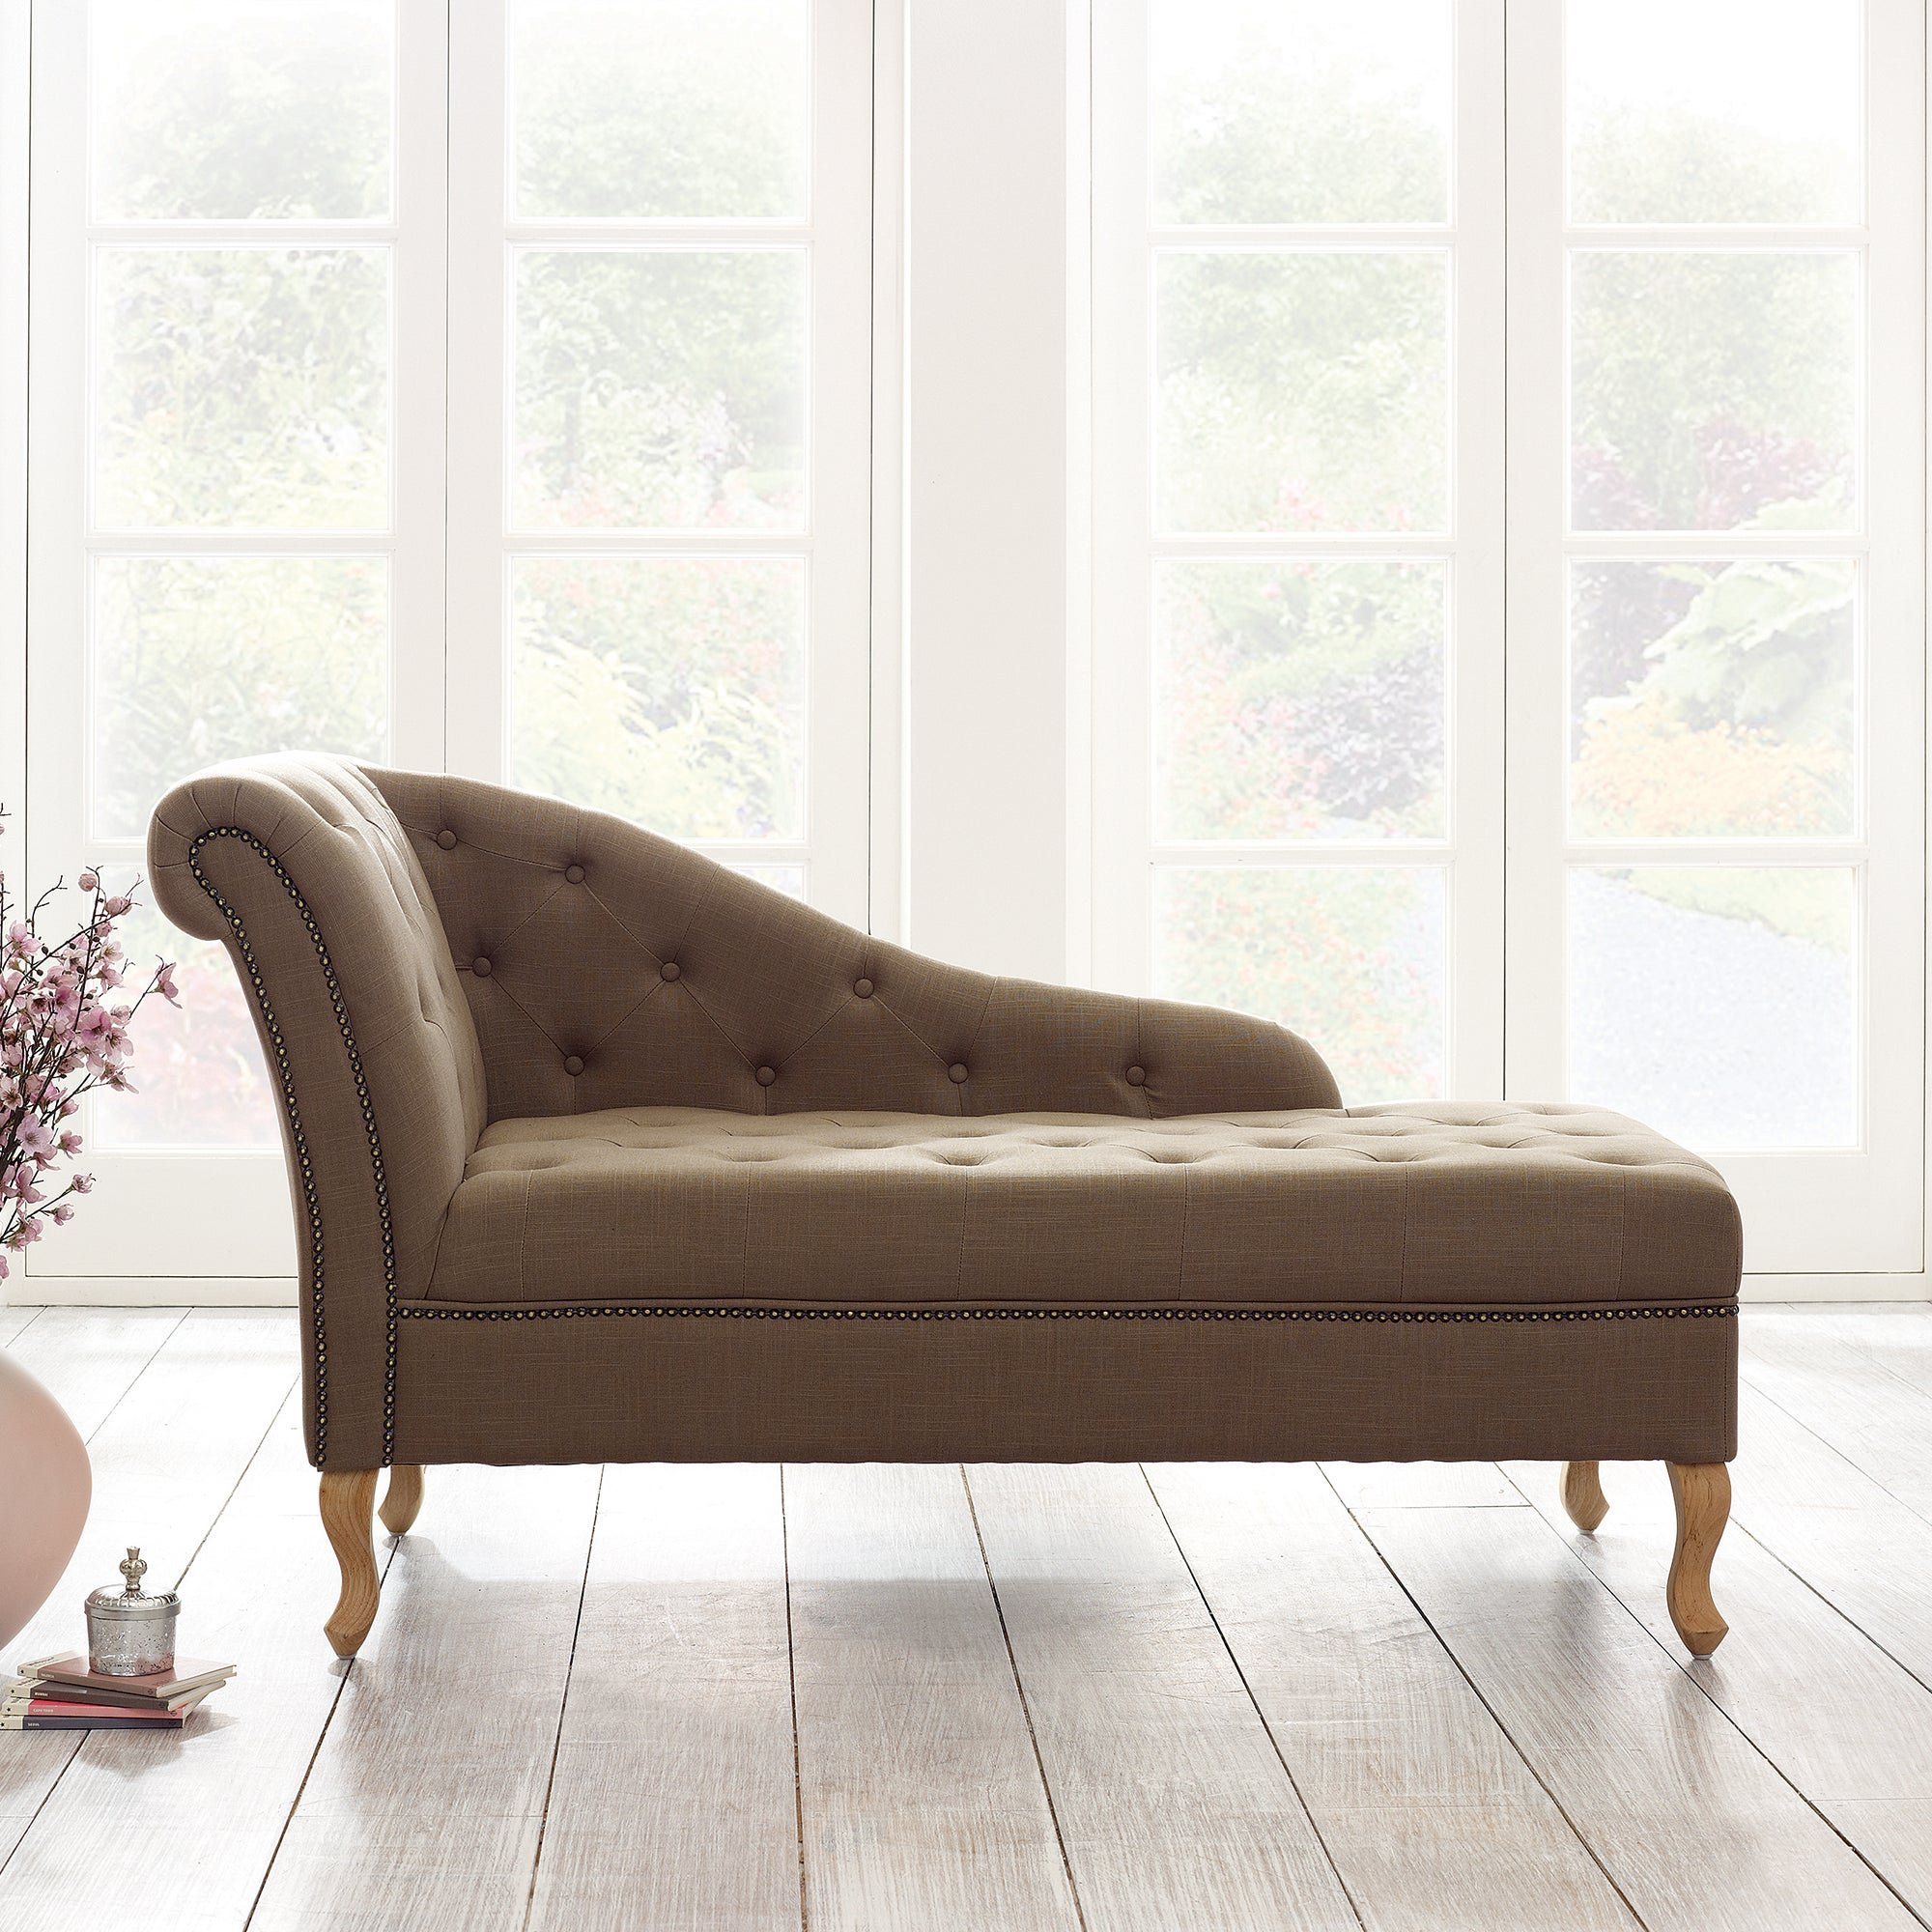 Mink Collette Chaise Longue